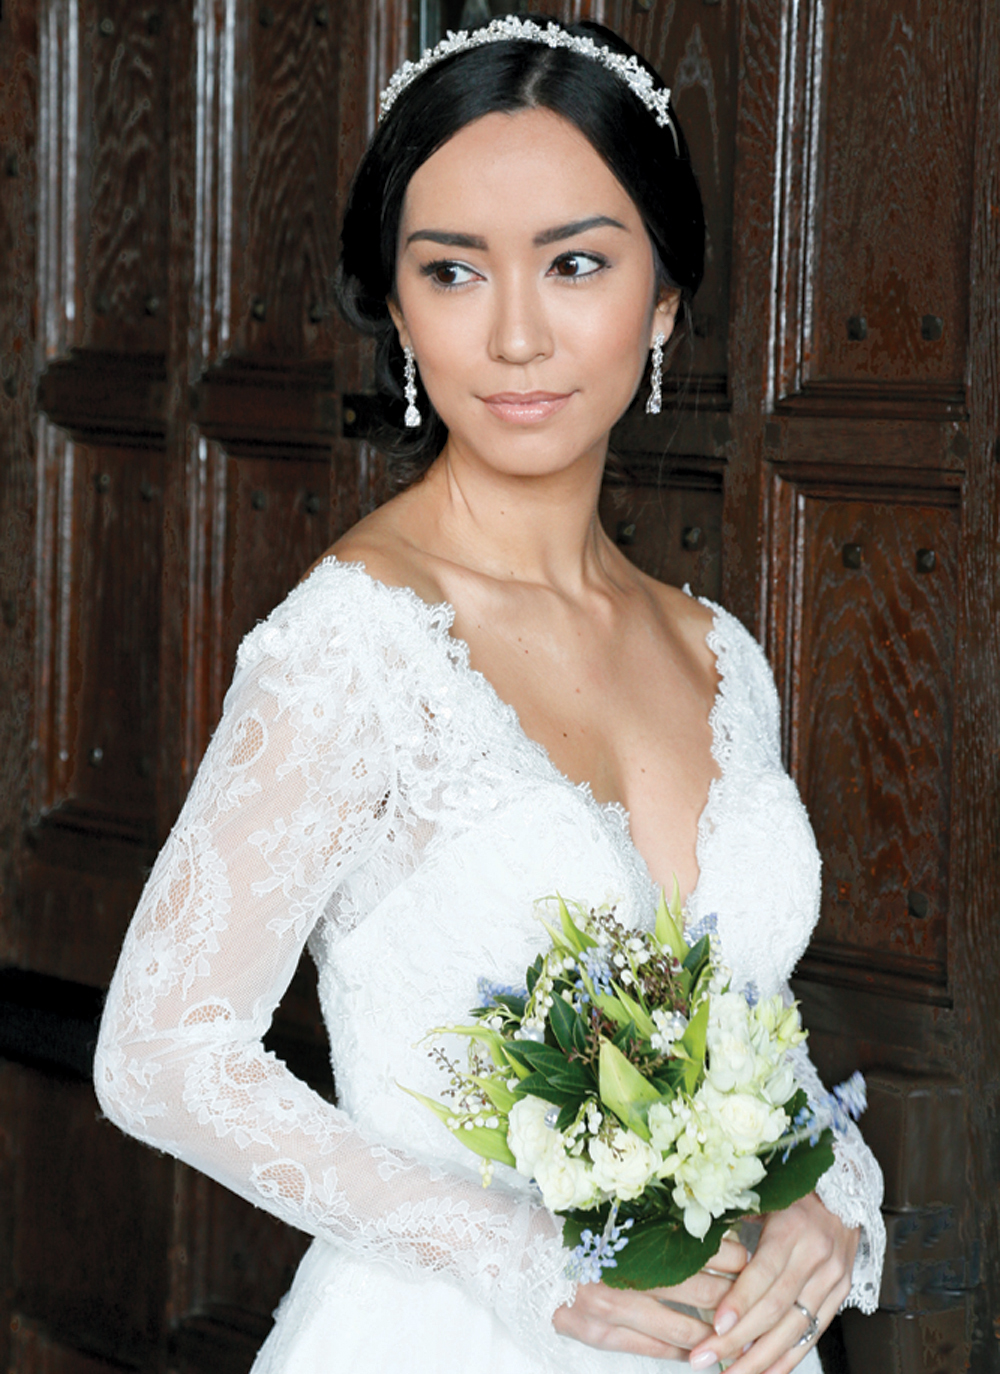 Hair & Makeup: The Bridal Suite NY, Gown: Oleg Cassini (CWG770), Bouquet: Sandra's & Donath's Florist